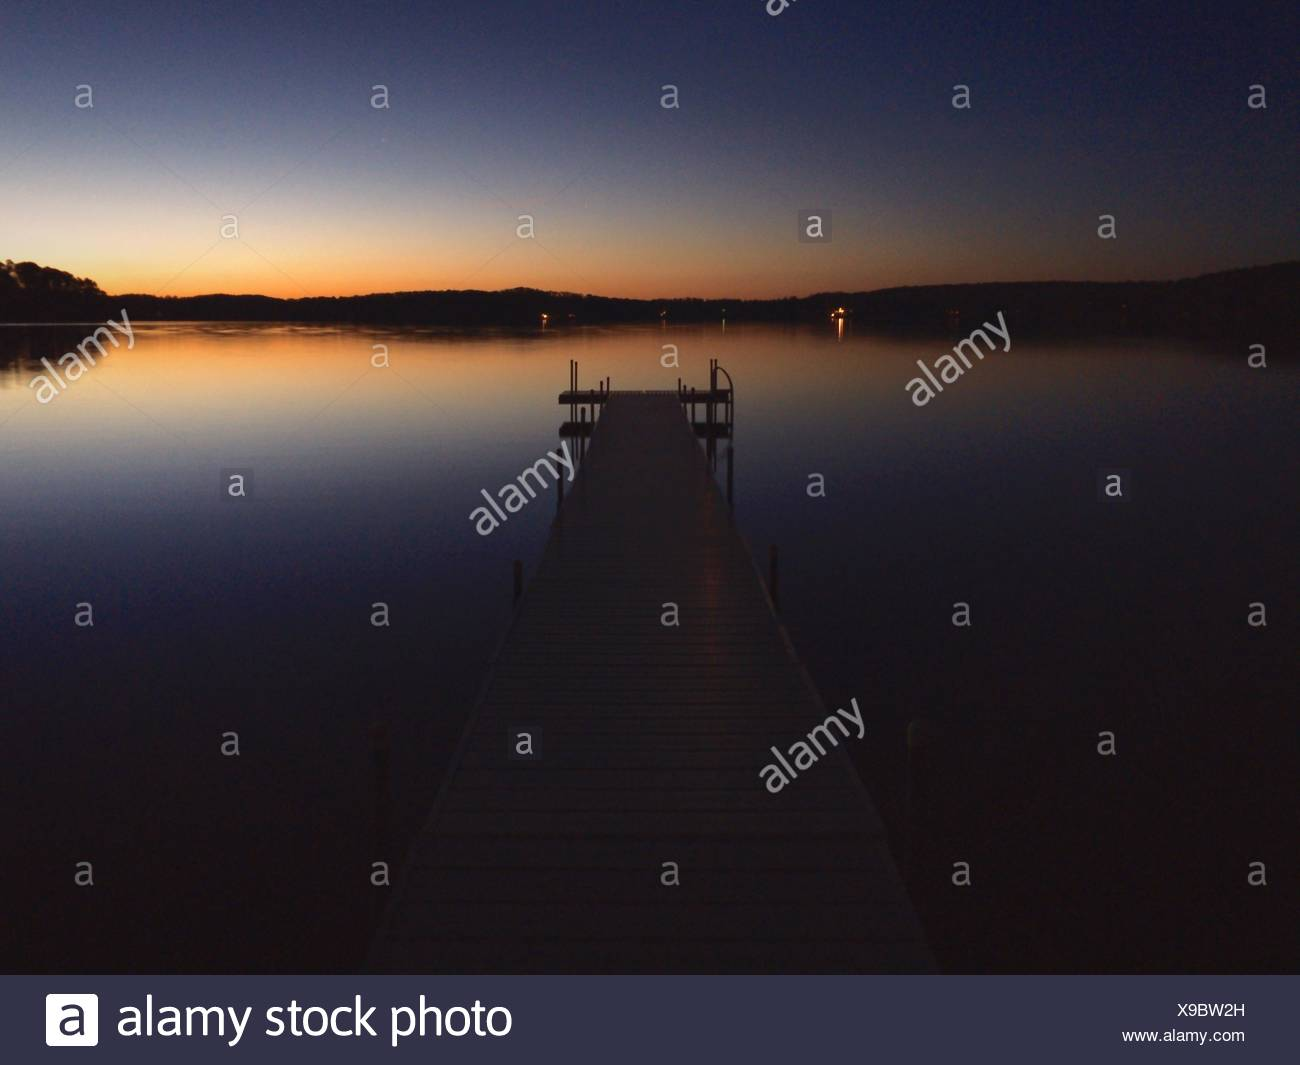 Pier Amidst Lake Against Clear Sky At Dusk - Stock Image